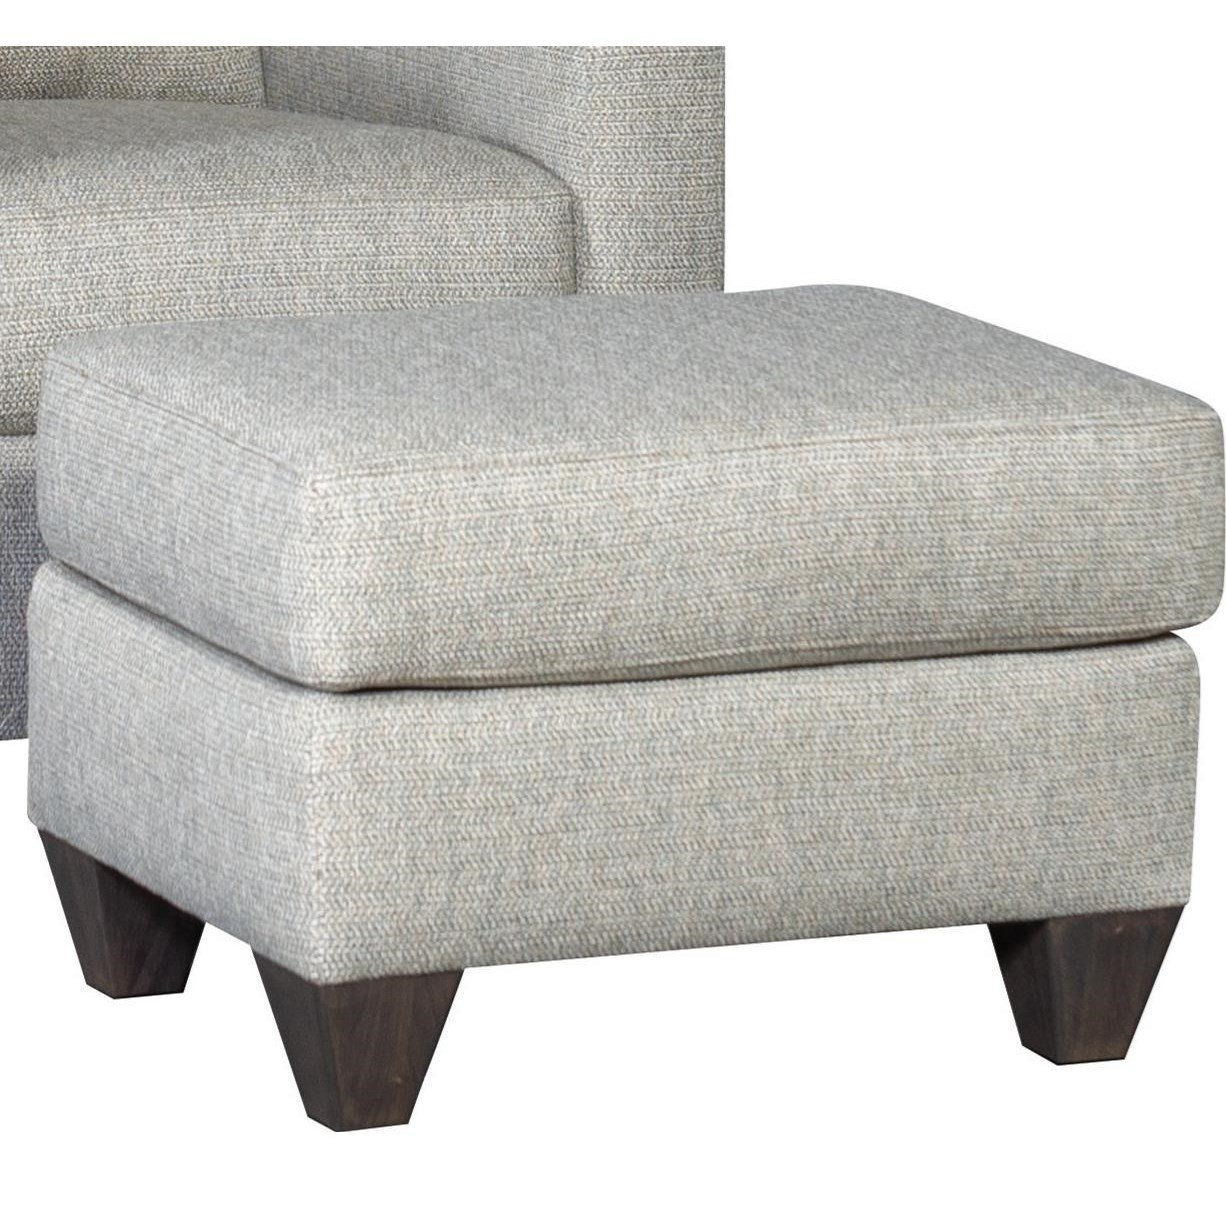 3488 Ottoman by Mayo at Story & Lee Furniture